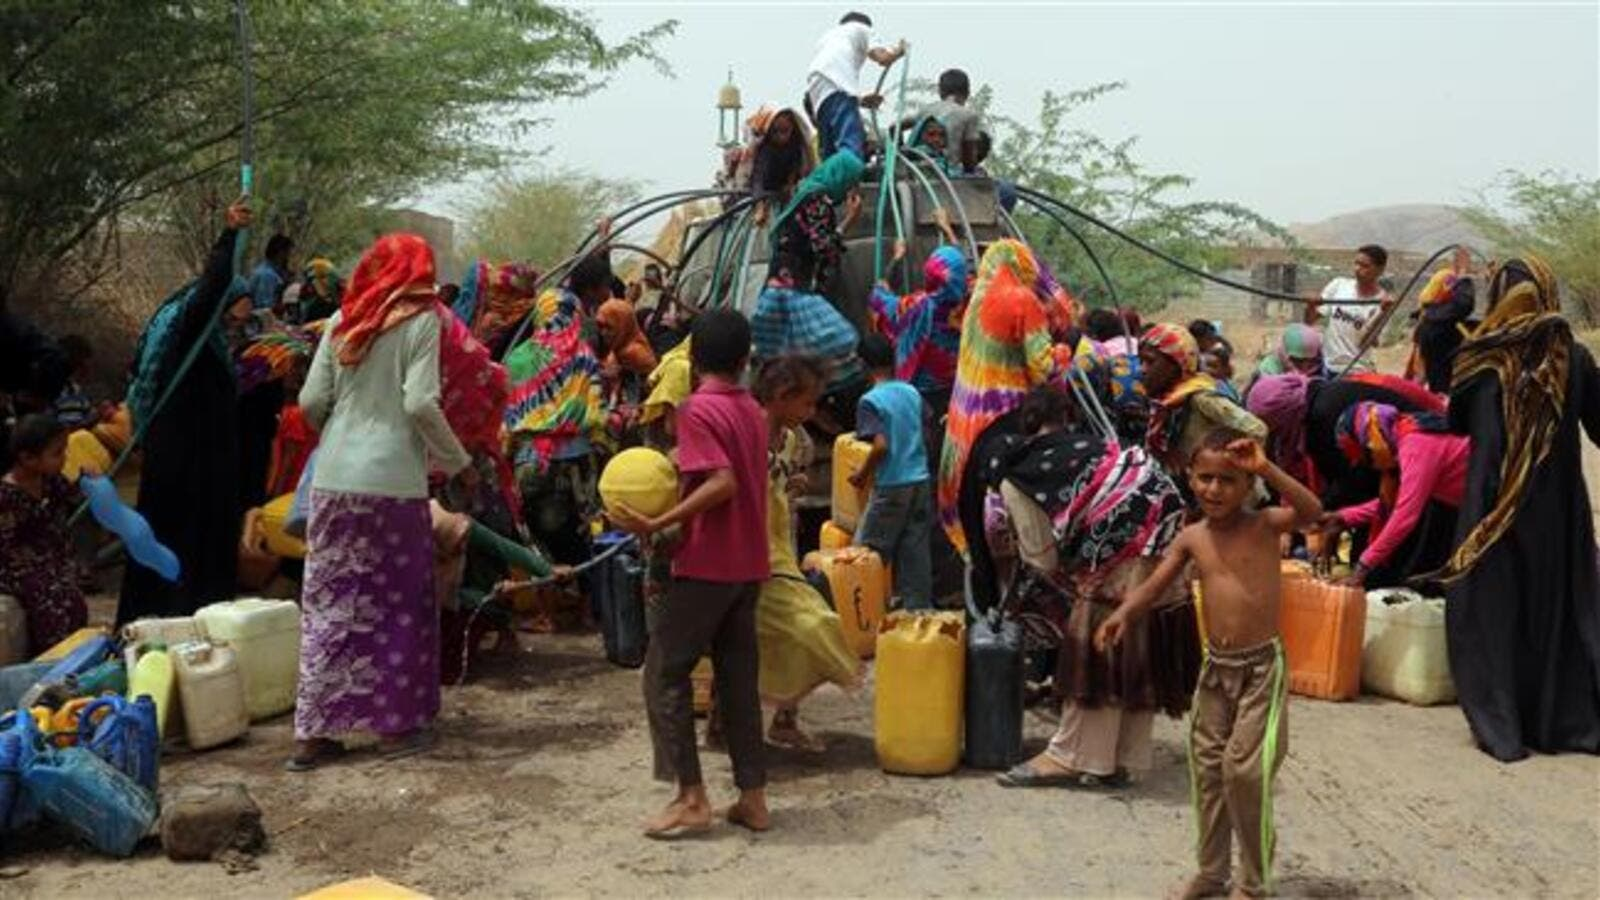 Yemenis gather next to a water tank to collect water in an impoverished coastal village on the outskirts of the Yemeni port city of Hudaydah, on May 12, 2018. (AFP Photo)